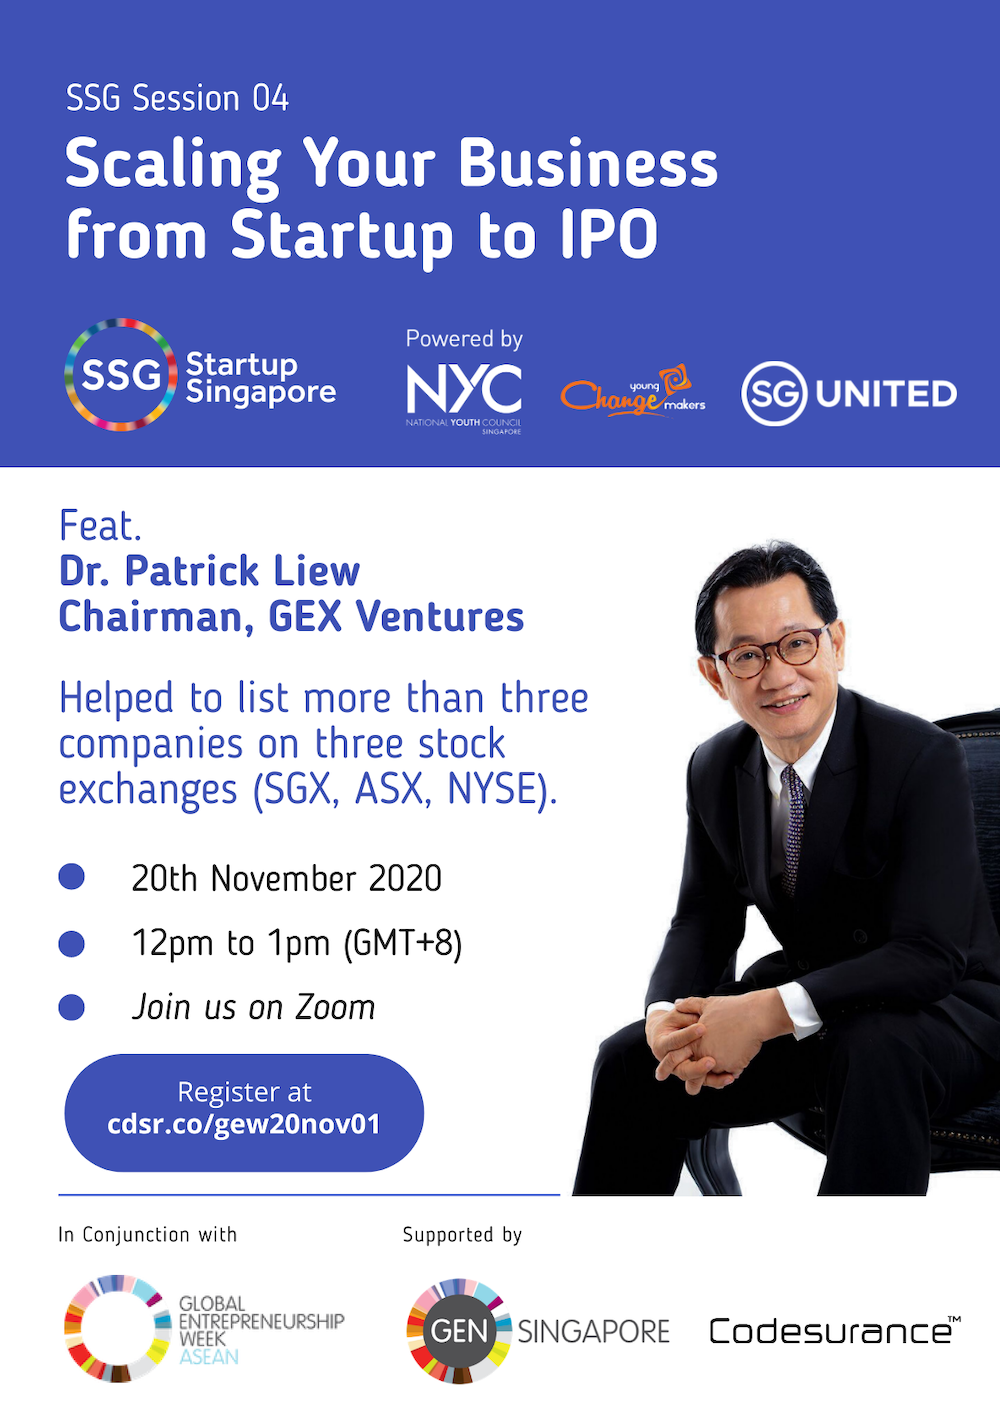 Scaling Your Business (Startup to IPO)